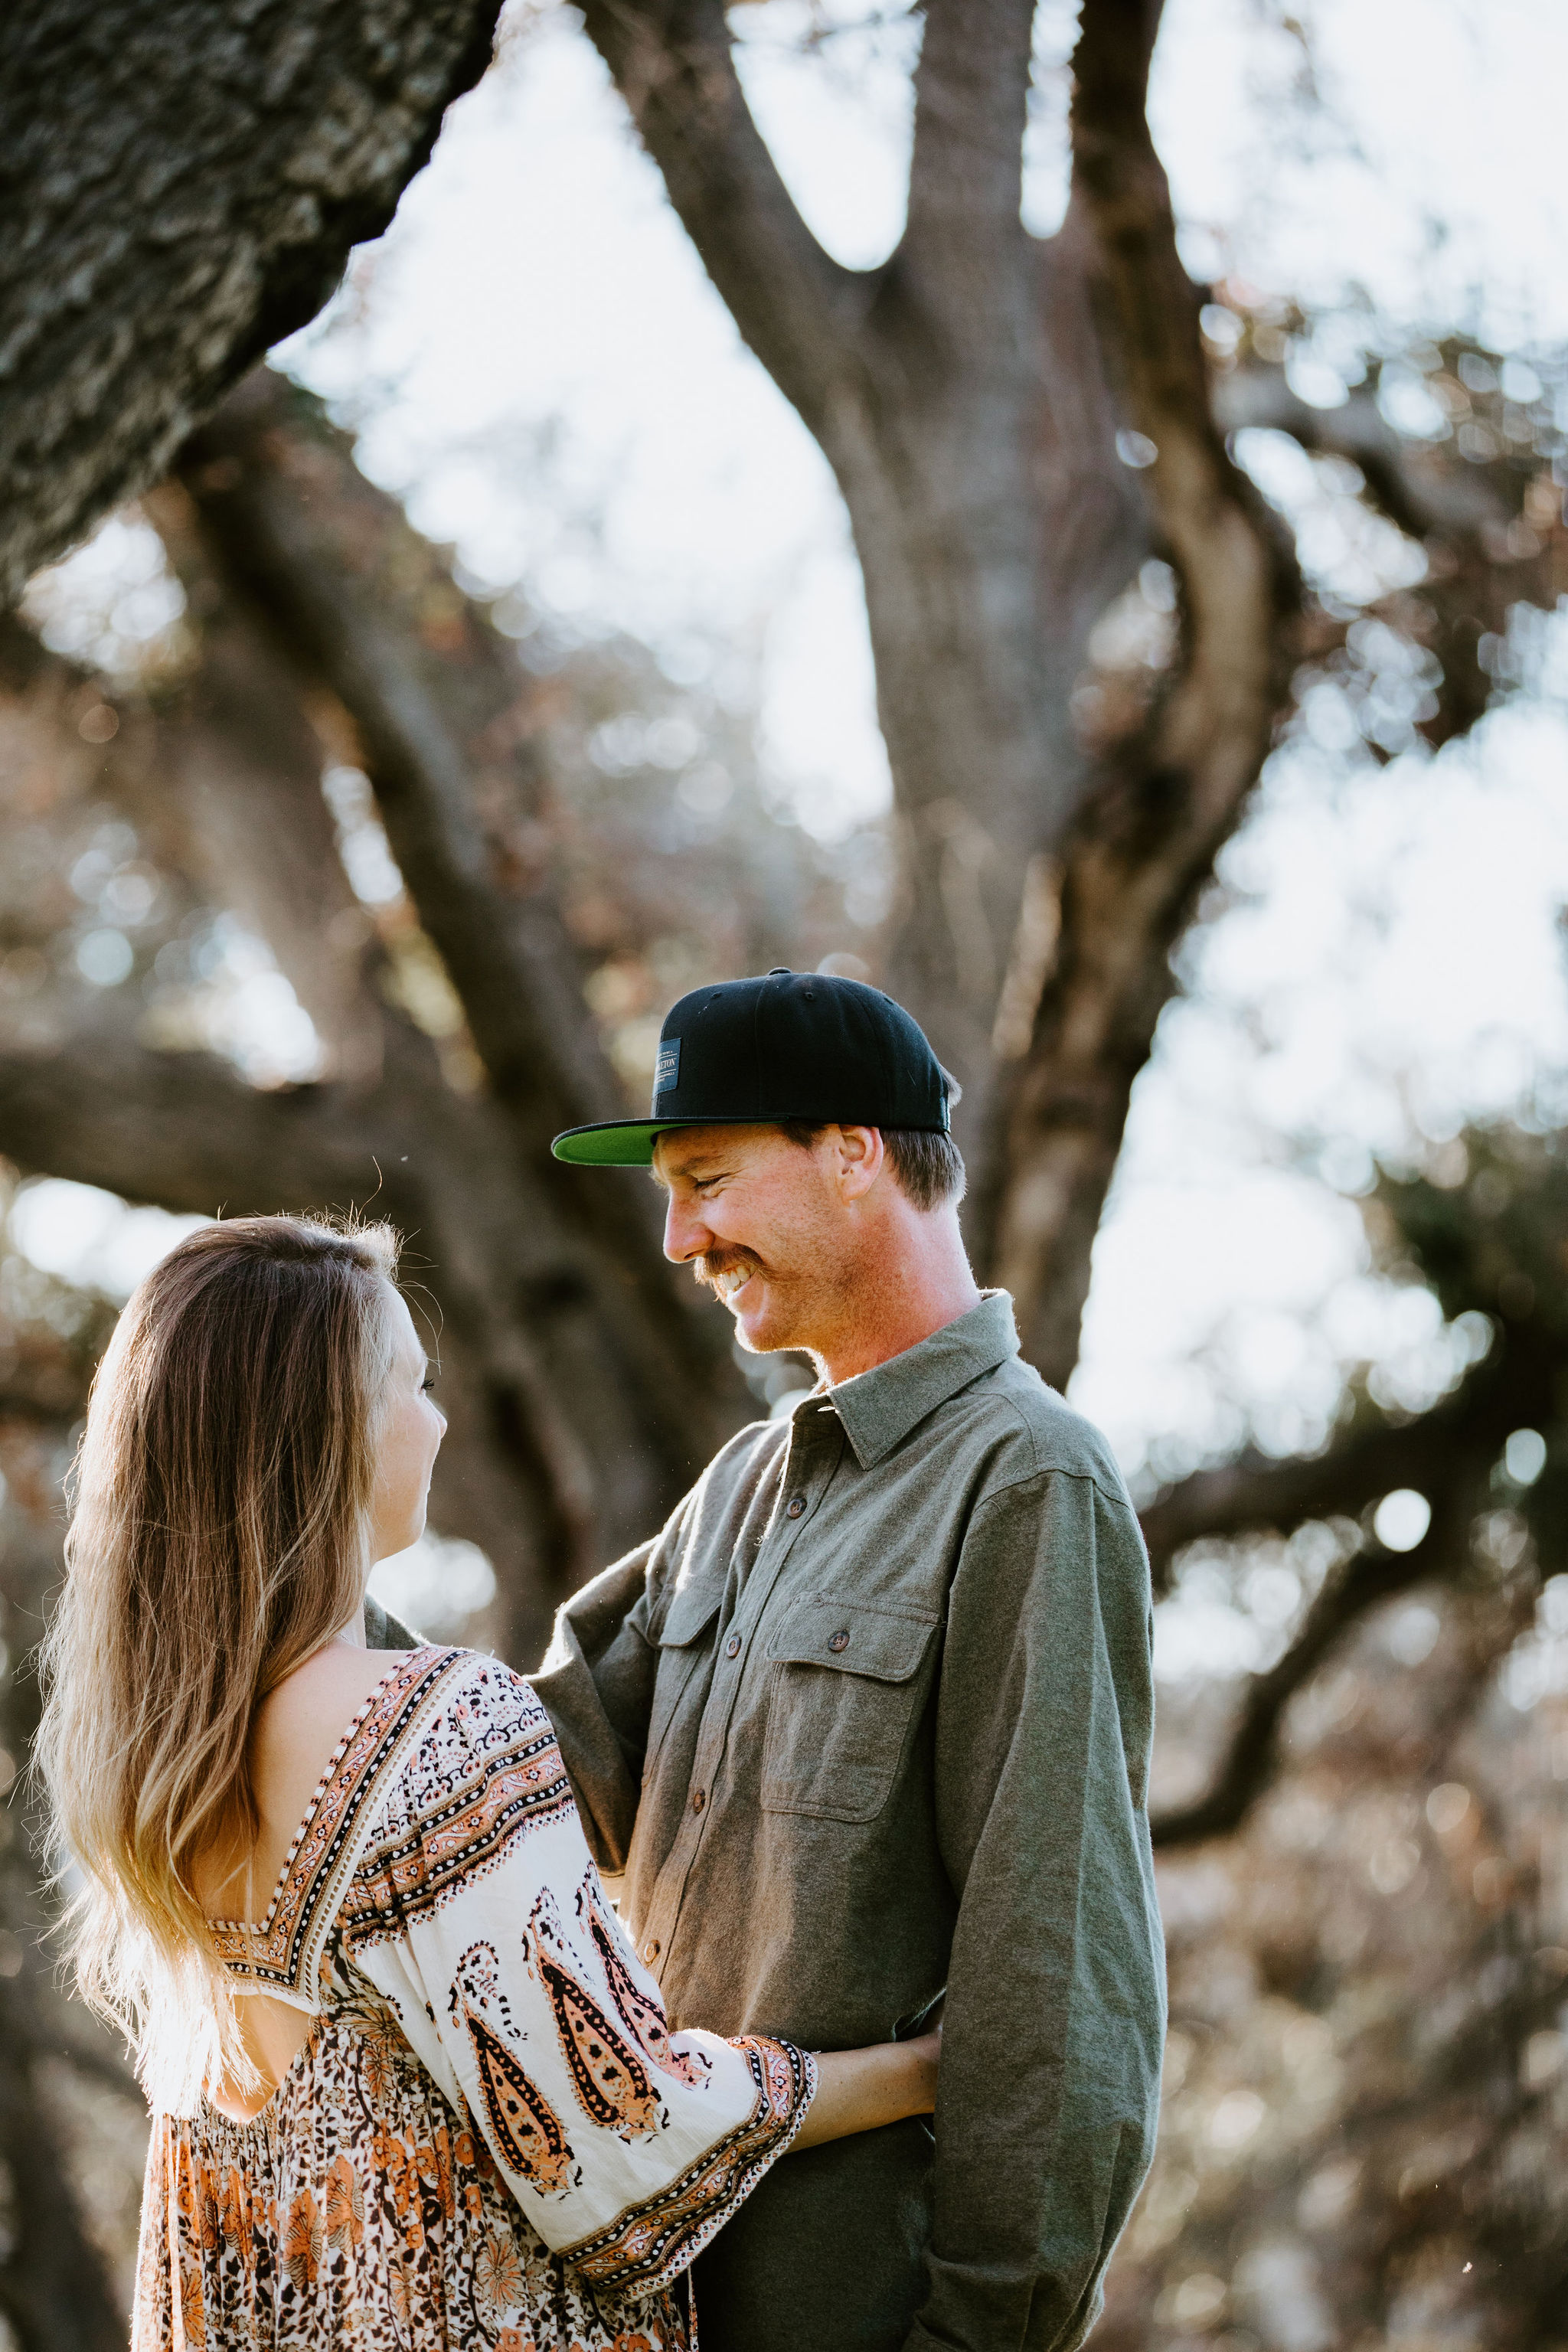 OjaiEngagementSession_Geoff&LyndsiPhotography_Eveline&Scotty23.jpg